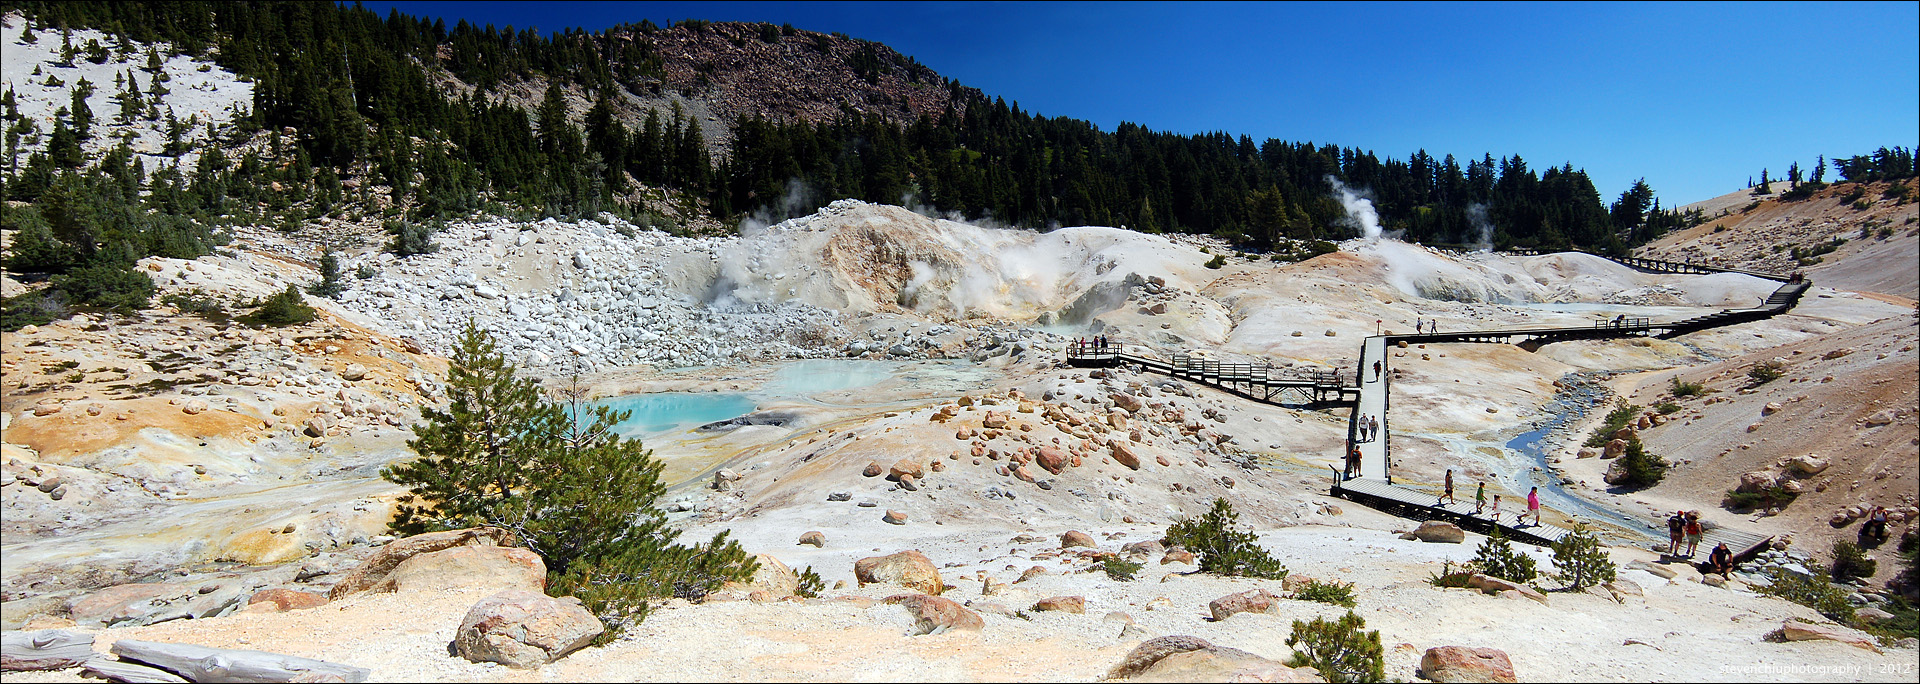 bumpass hell panorama by souk1501